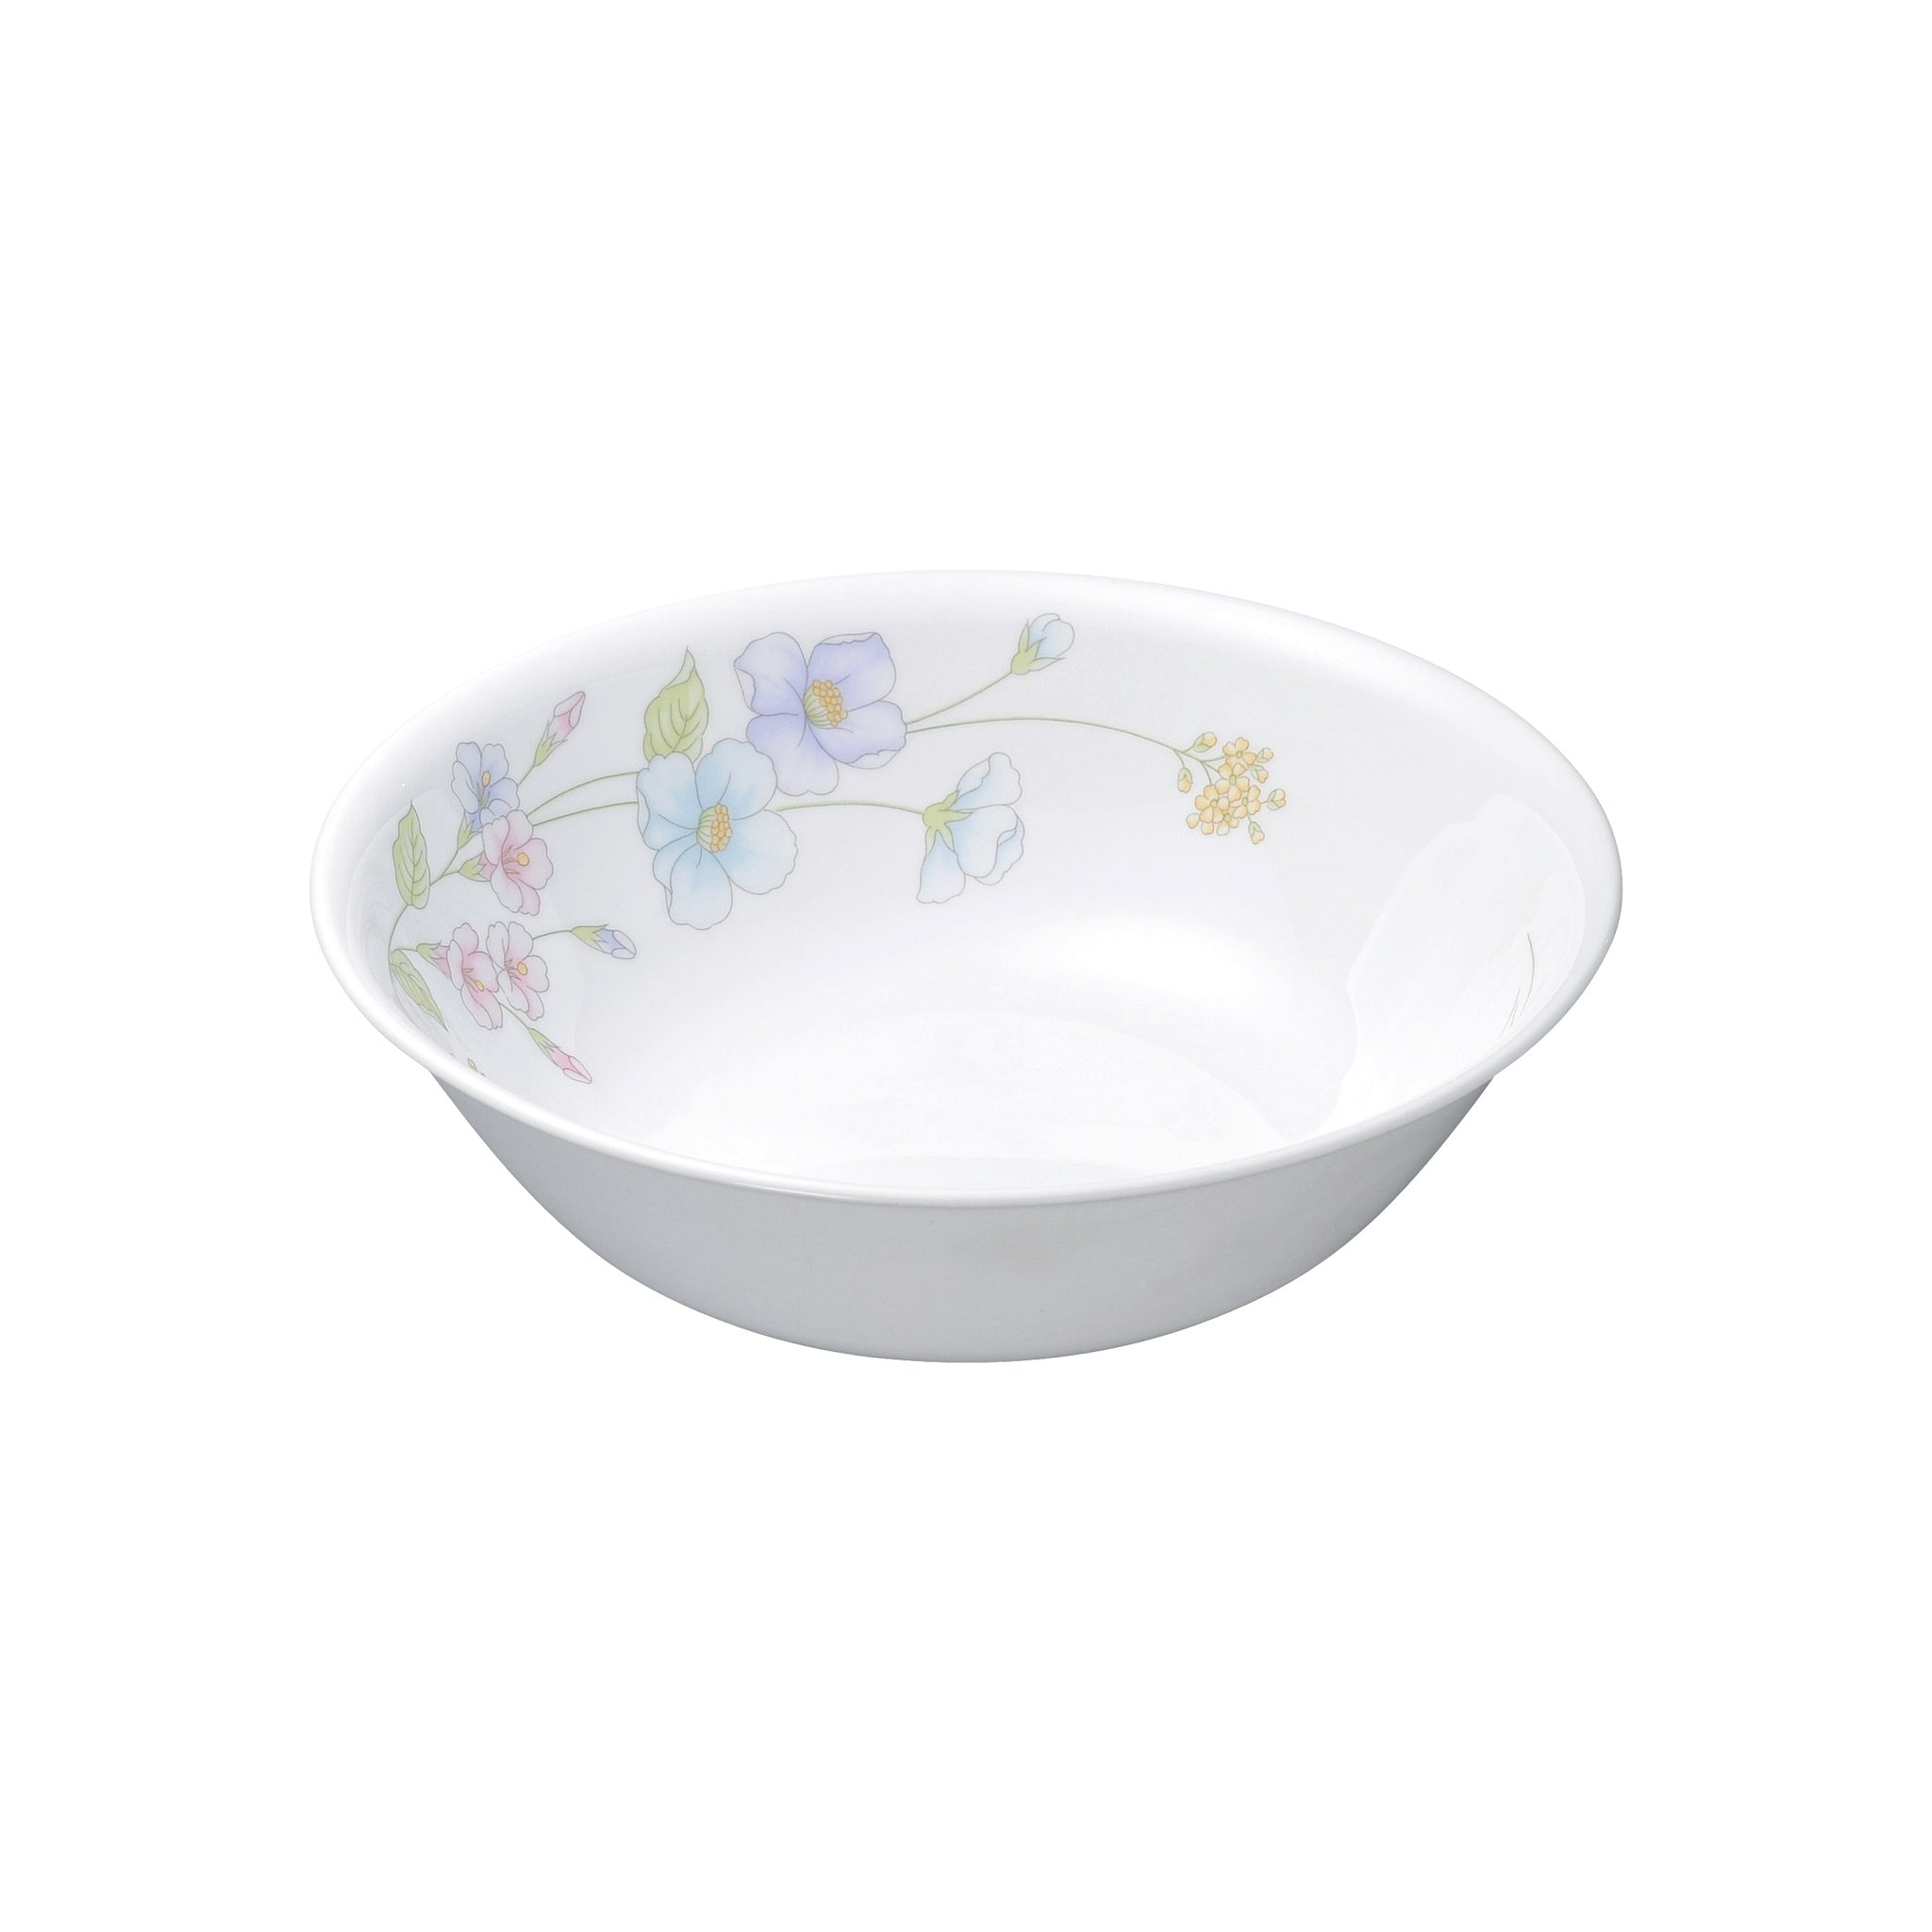 Corelle Deluxe Classic Pastel Bouquet 1.9L Serving Bowl-464-93-LP